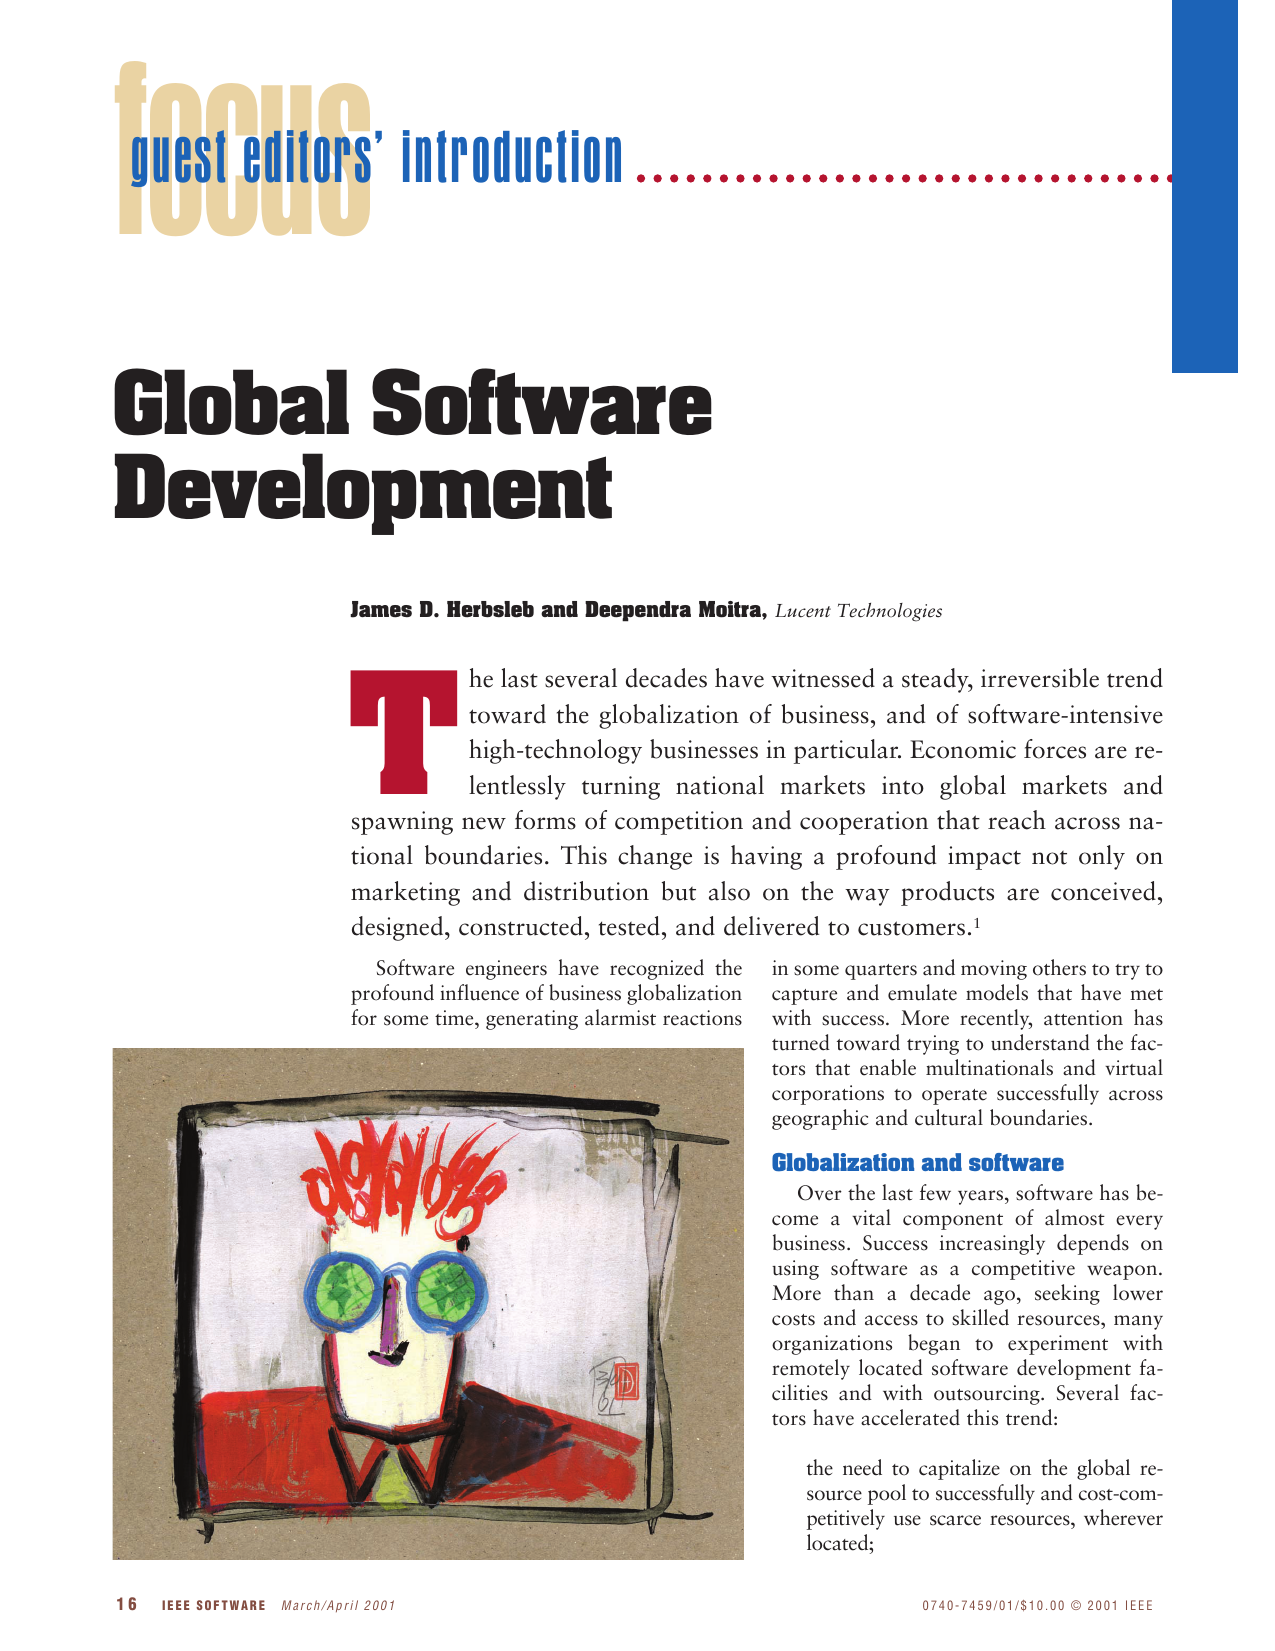 IEEE Software (March-April) Volume 18 Number 2(2001).pdf